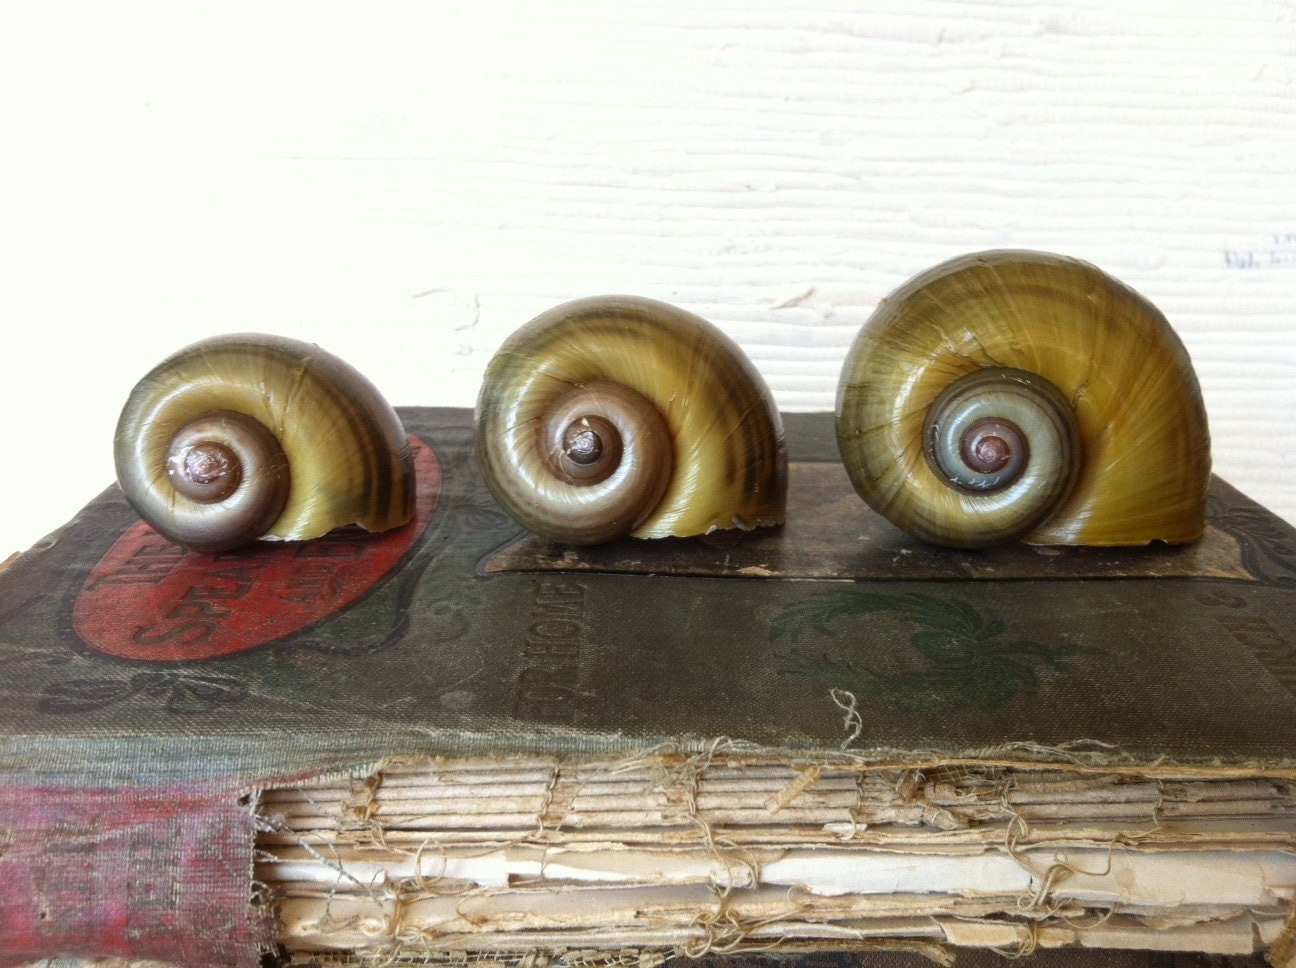 Beautiful Giant Snail Shells Natural History Set of 3